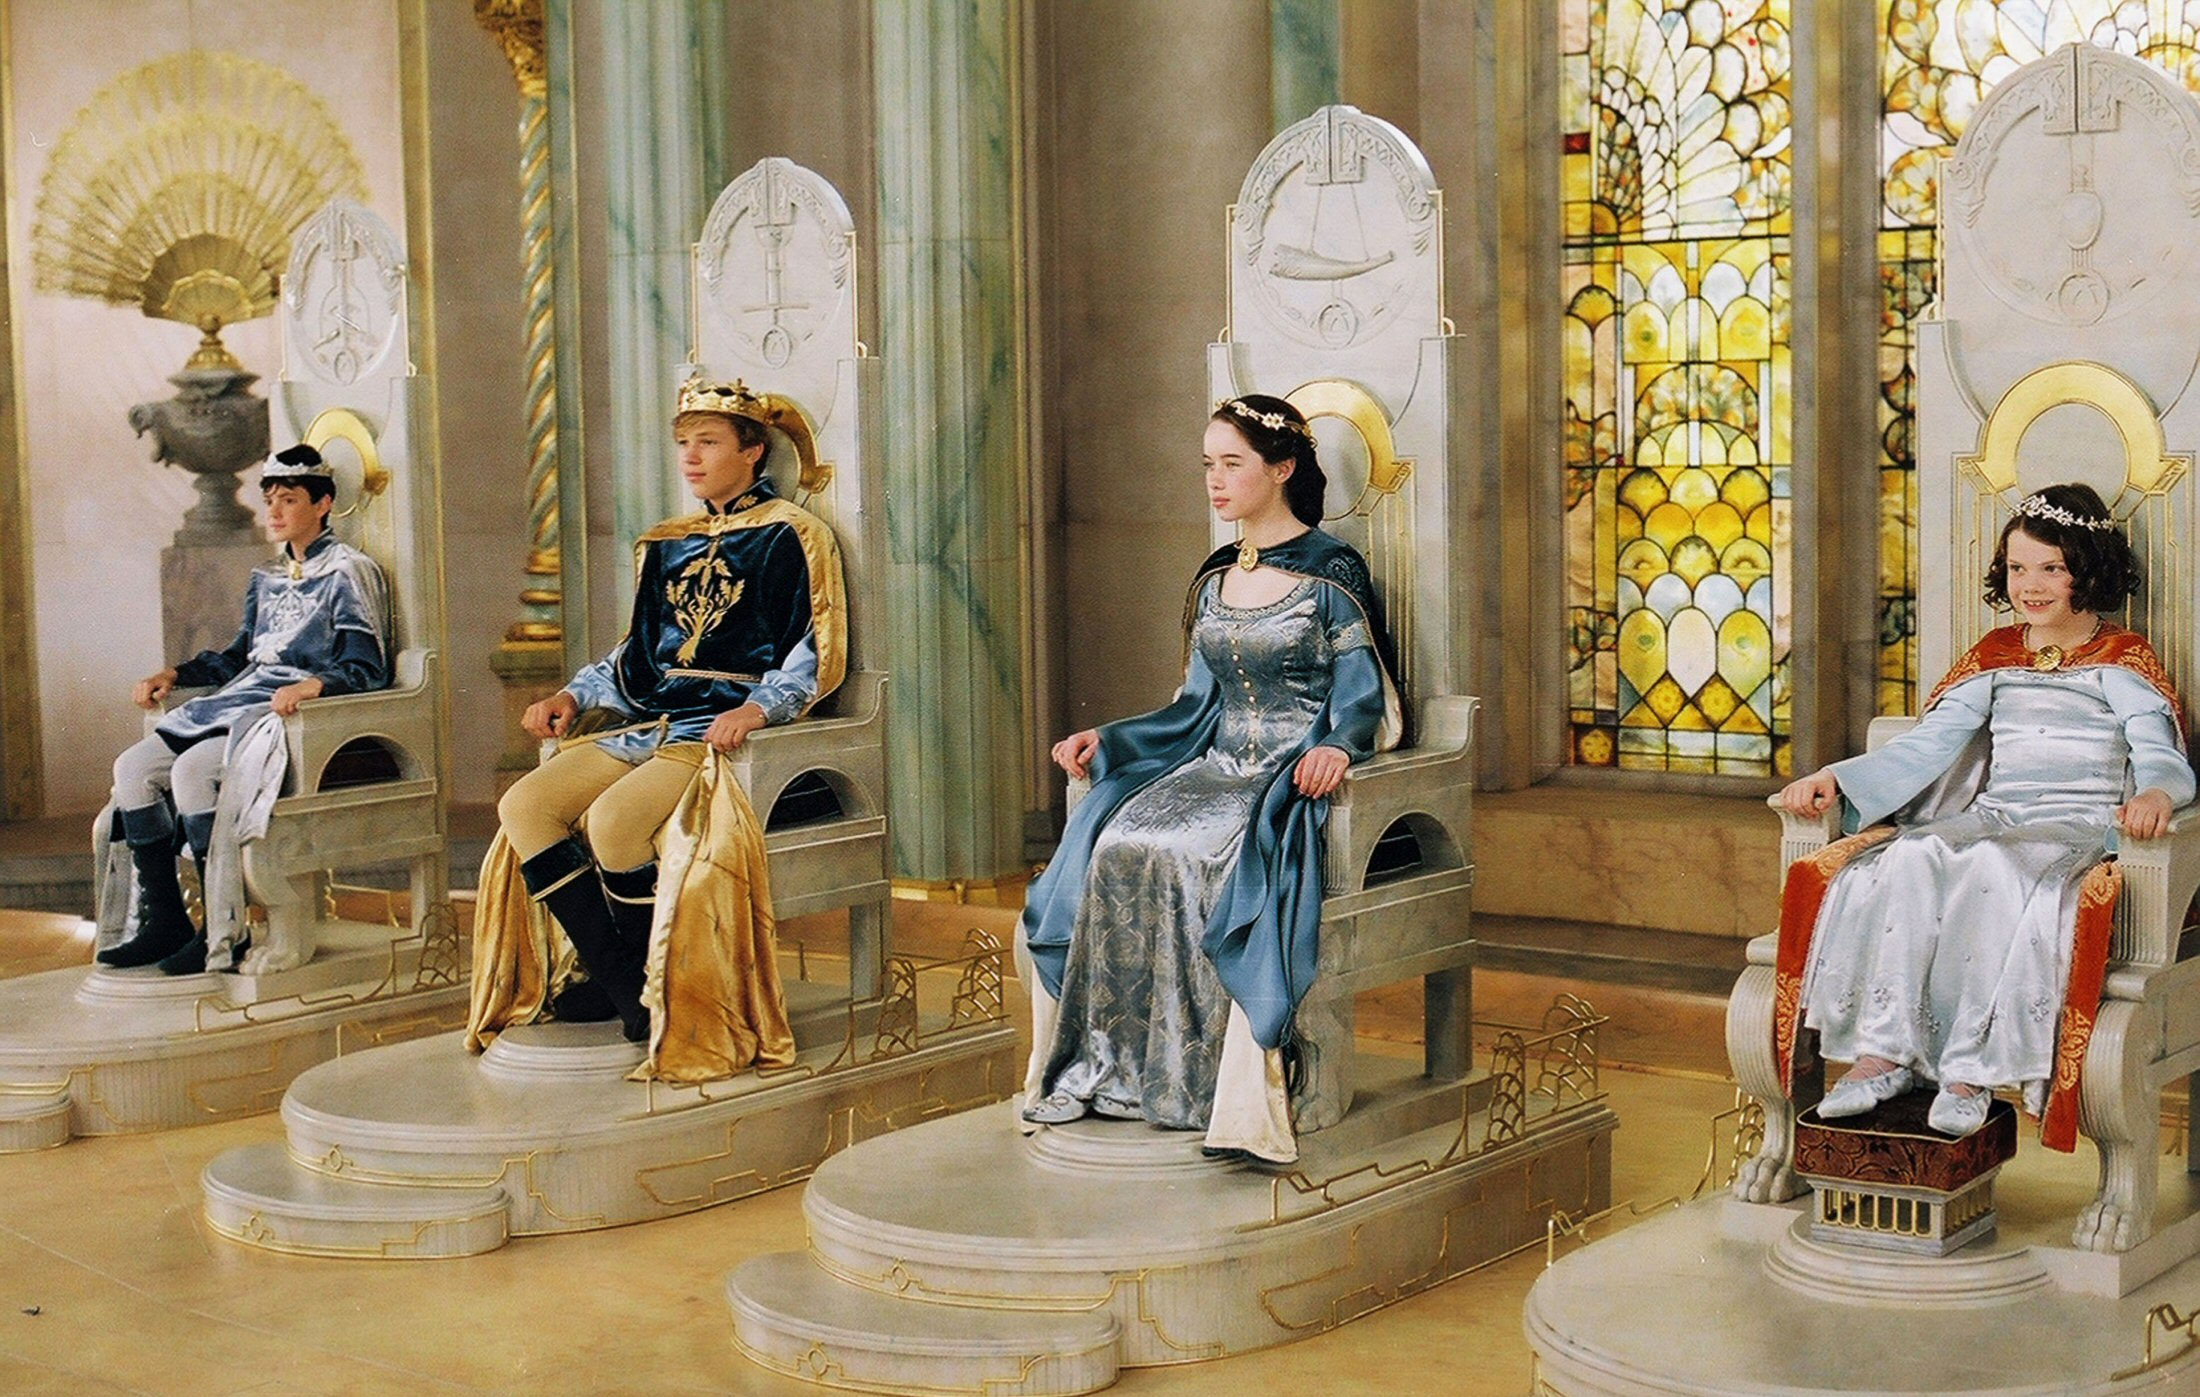 High King Peter, King Edmund, Queen Susan, and Queen Lucy at their coronation, at Cair Paravel in throne